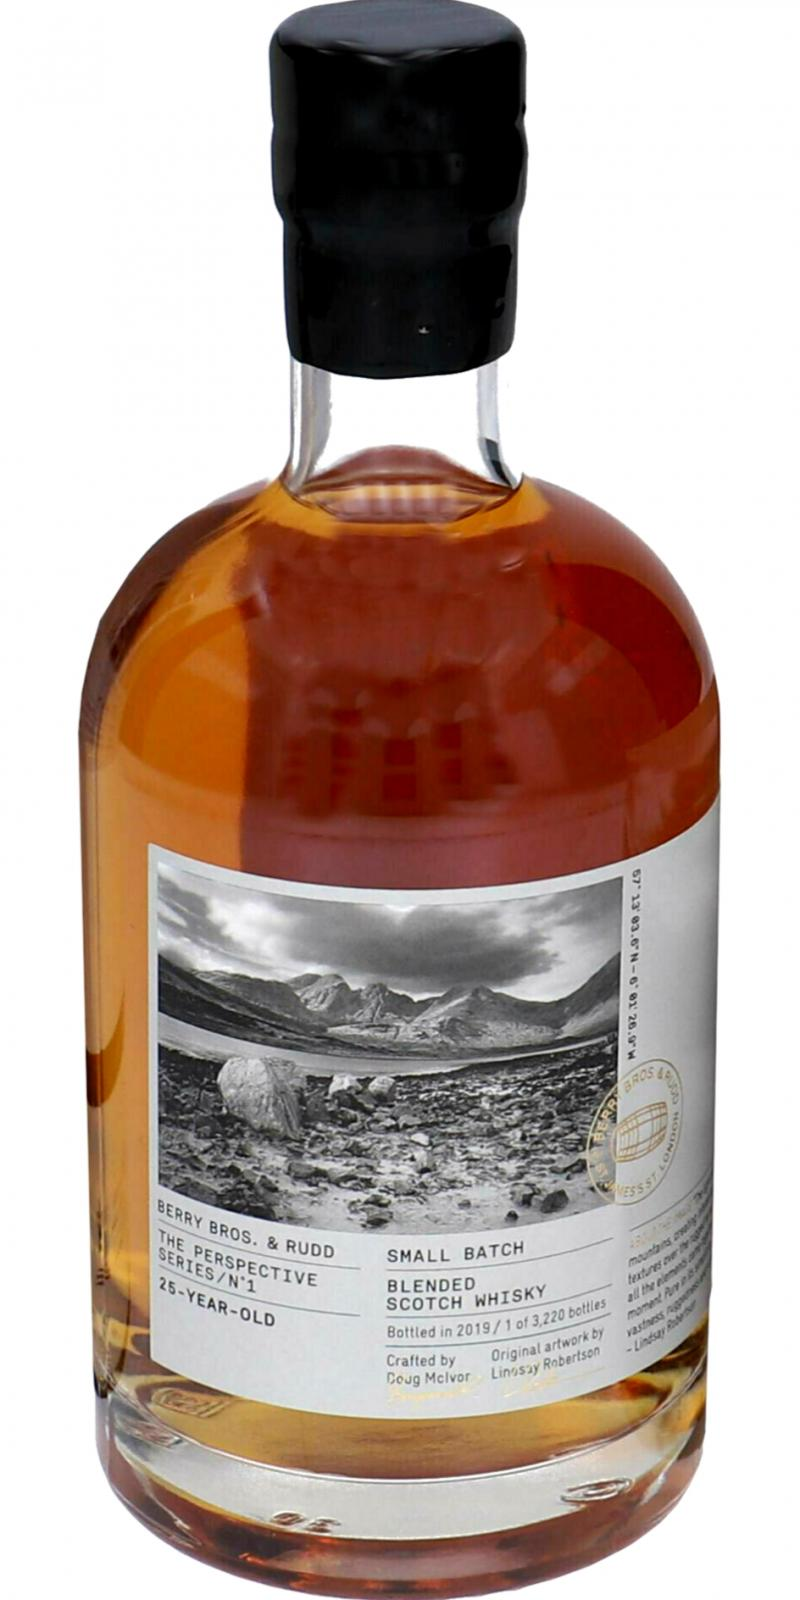 Blended Scotch Whisky 25-year-old BR